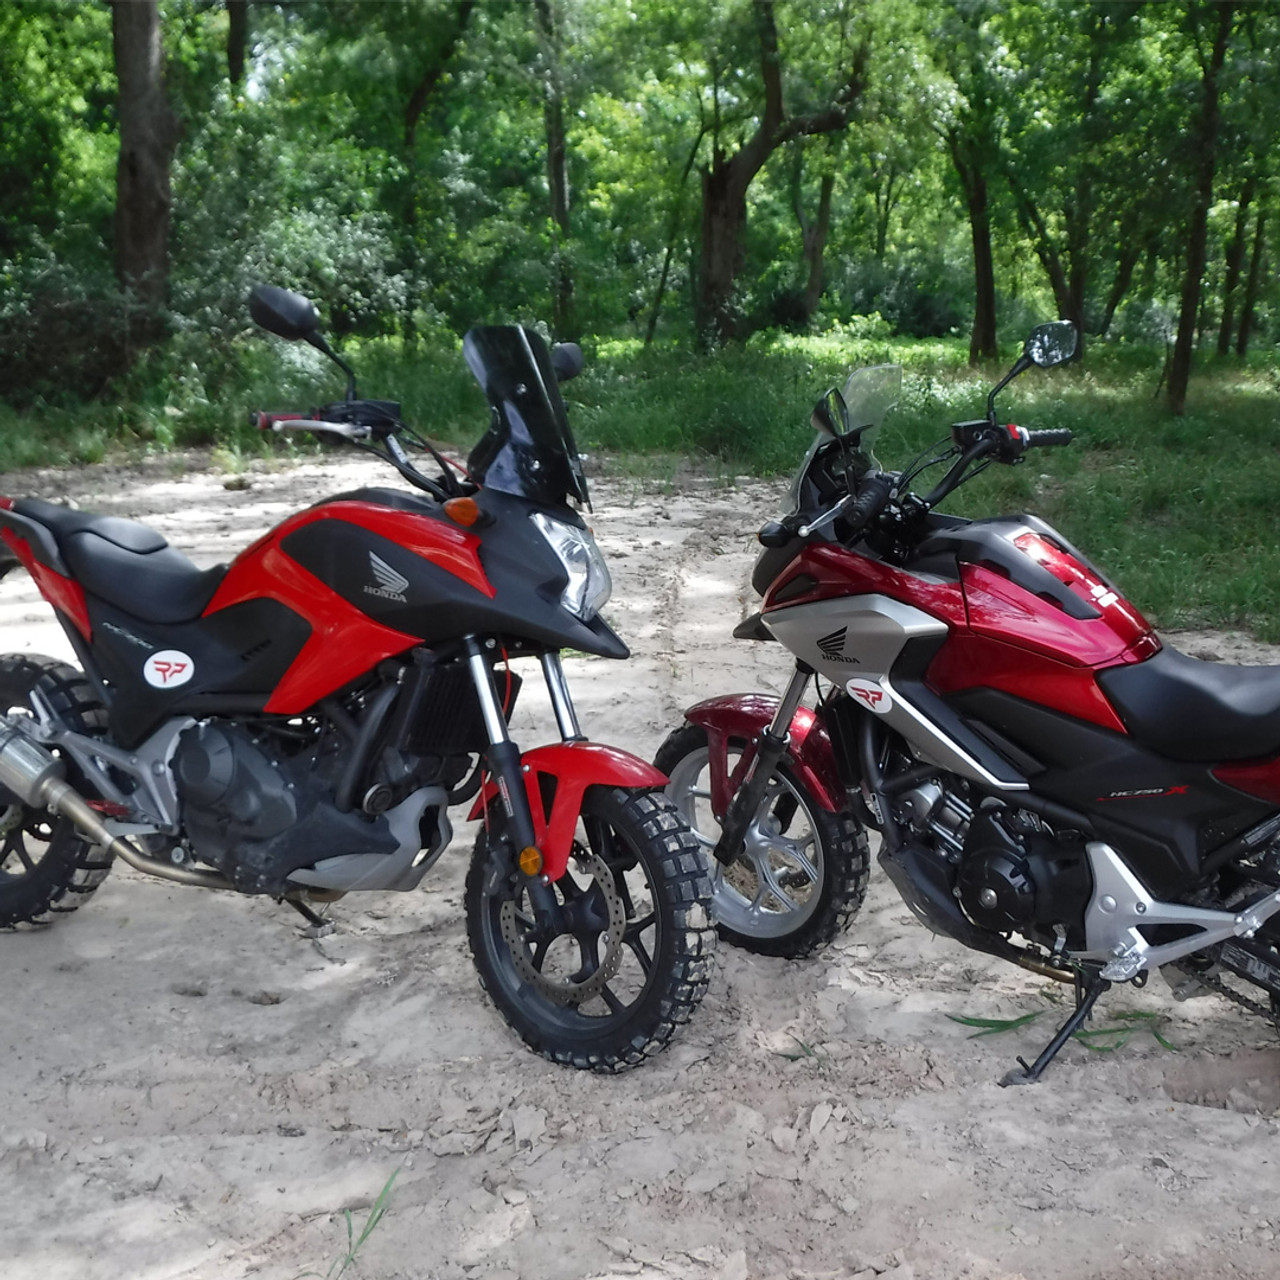 Honda motorcycle modular designed ADV Foot Platforms with wider and more aggressive grips, an angled bottom edge for more clearance, and are available in black, red and brushed aluminum; along with a set of robust pivot mounts that fit most Honda street bikes.